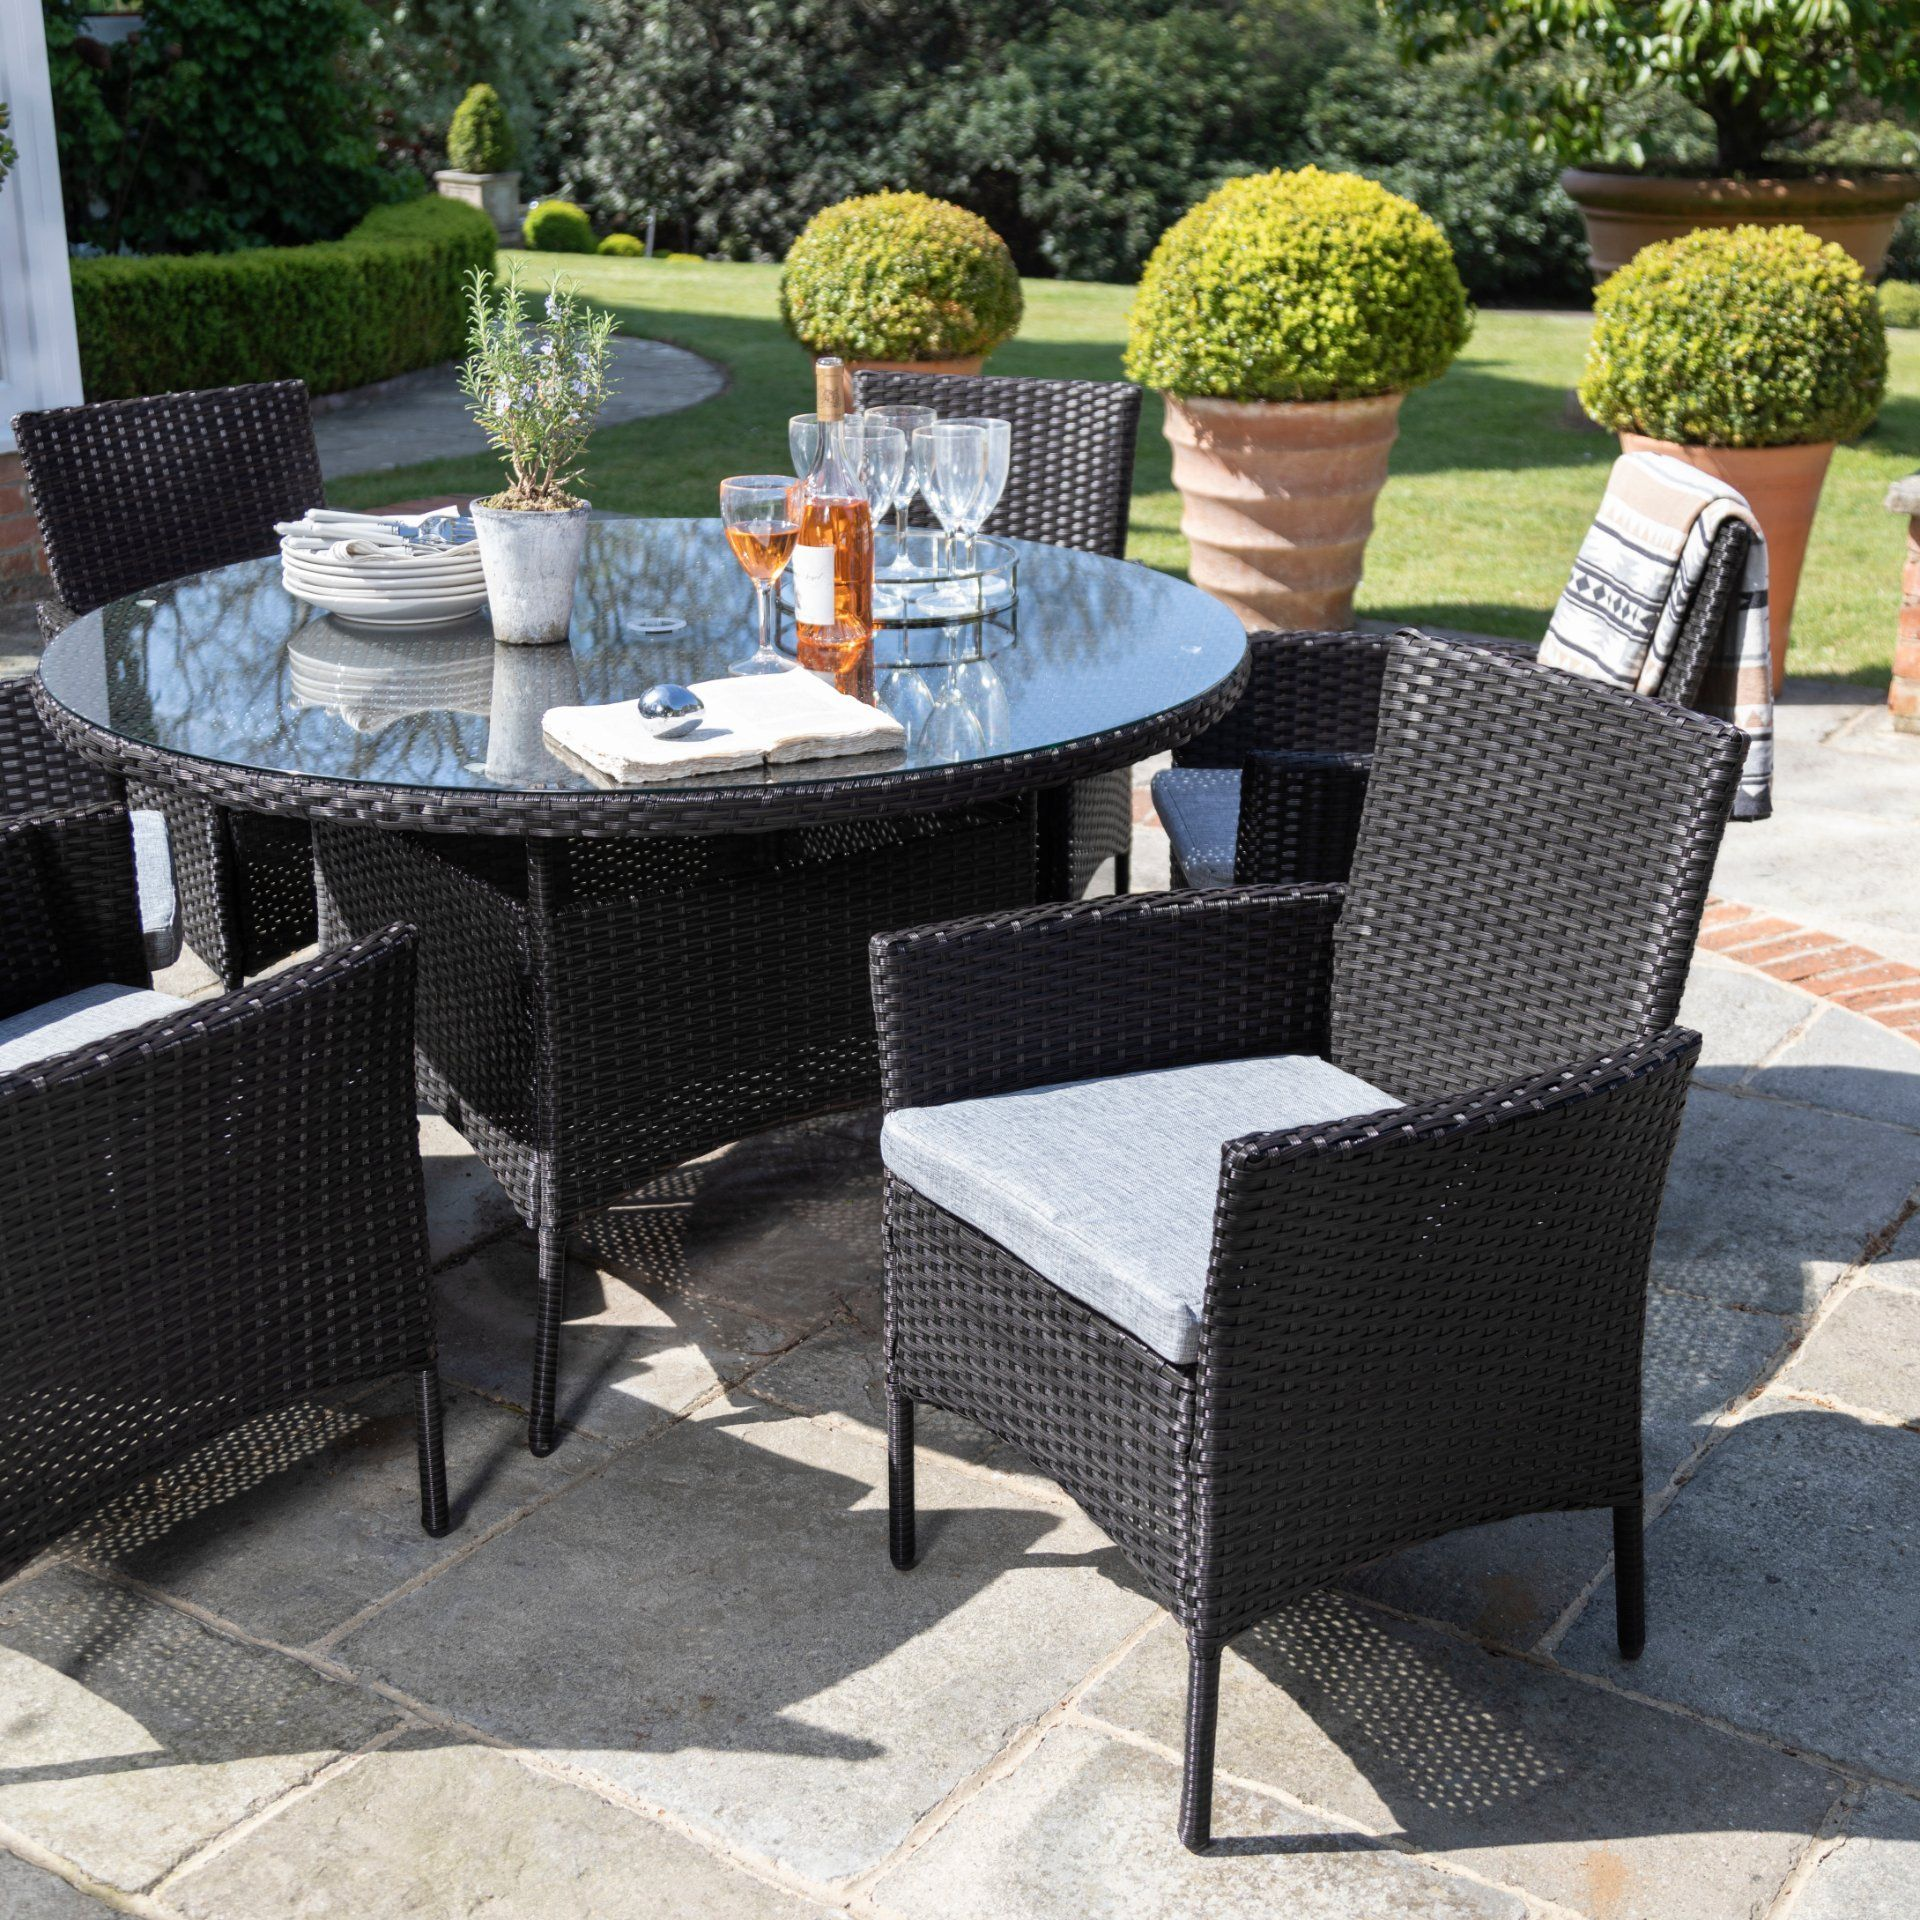 6 Seater Rattan Round Dining Table Set In Black Garden Furniture Out Laura James